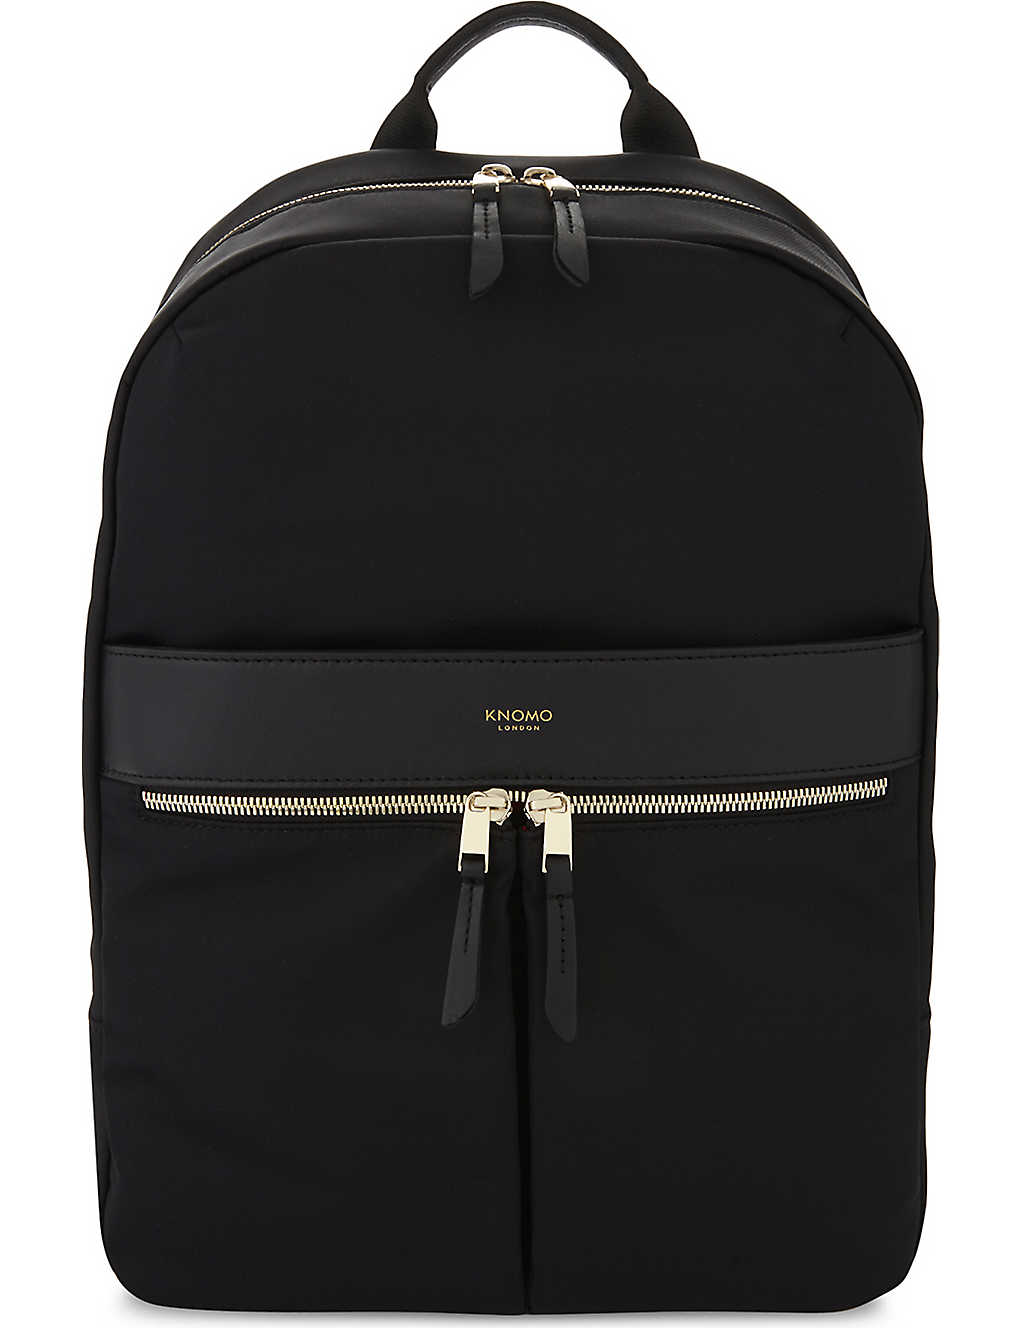 KNOMO: Mayfair Beauchamp backpack 8.8l